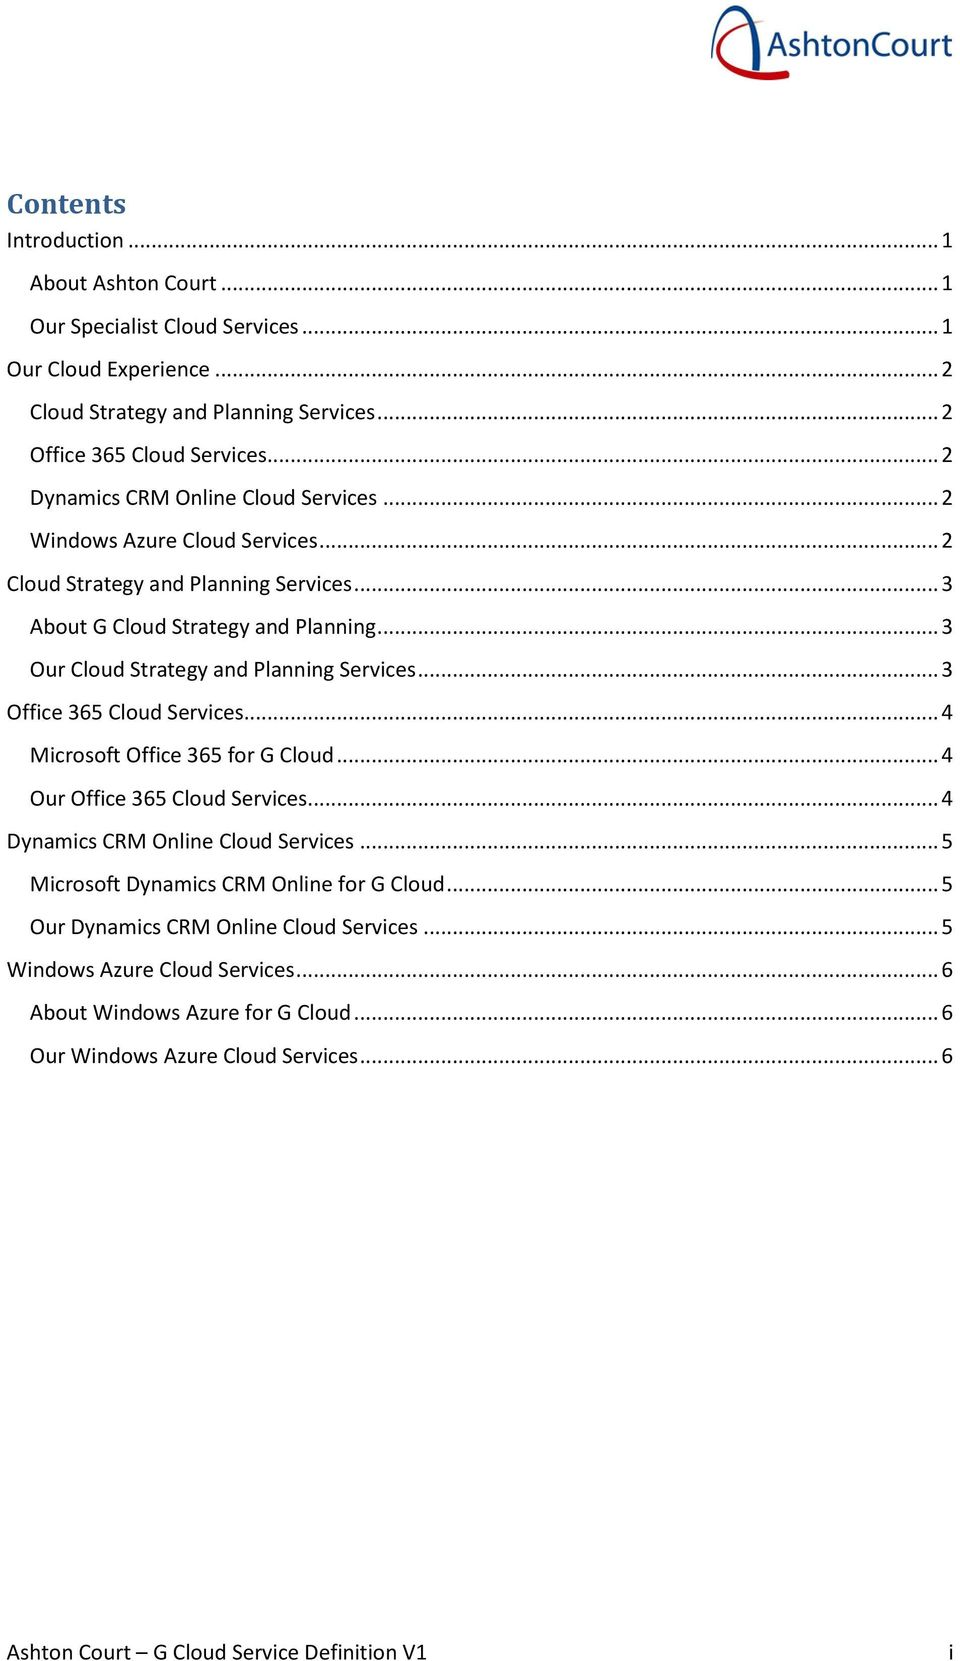 .. 3 Our Cloud Strategy and Planning Services... 3 Office 365 Cloud Services... 4 Microsoft Office 365 for G Cloud... 4 Our Office 365 Cloud Services... 4 Dynamics CRM Online Cloud Services.